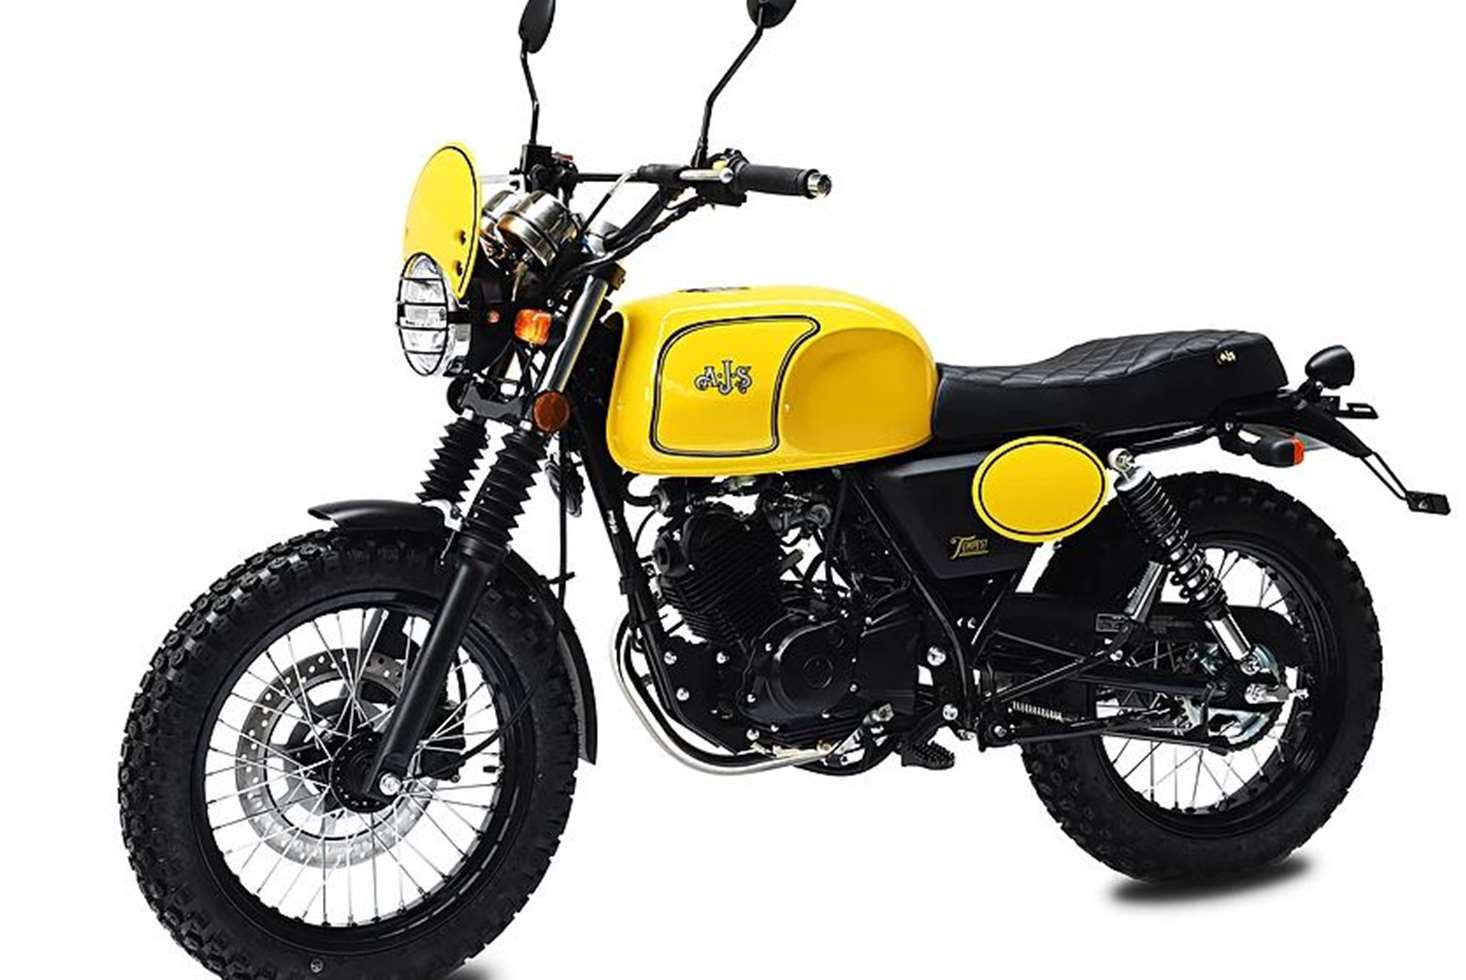 ajs tempest scrambler 125 ajs roadbikes new bikes mph moto. Black Bedroom Furniture Sets. Home Design Ideas